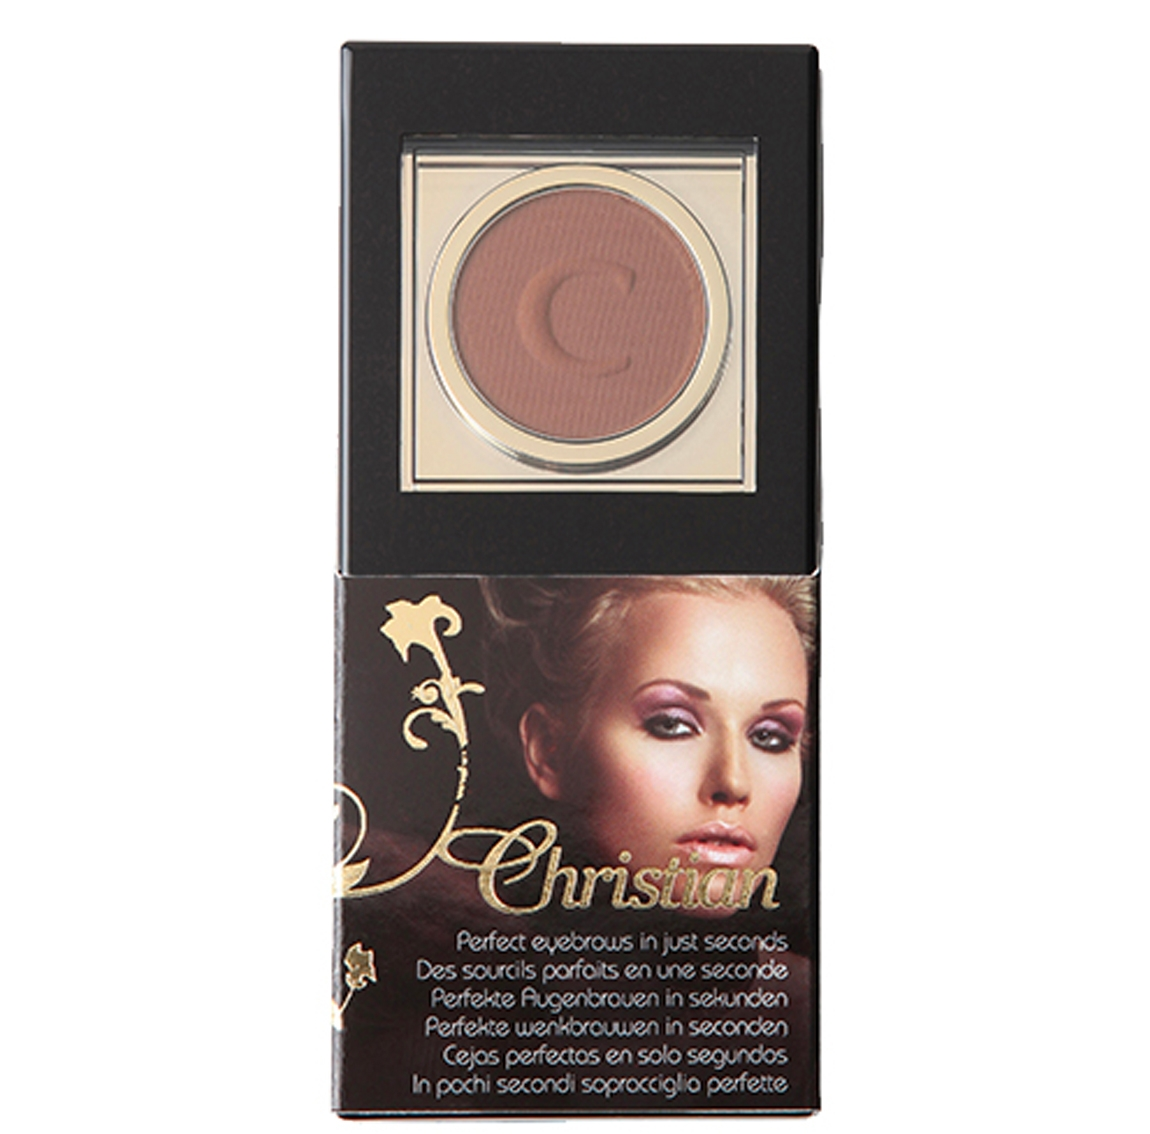 Kit maquillage sourcils, semi-permanent, redessiner sourcils cancer, irid brown, Christian Cosmetics